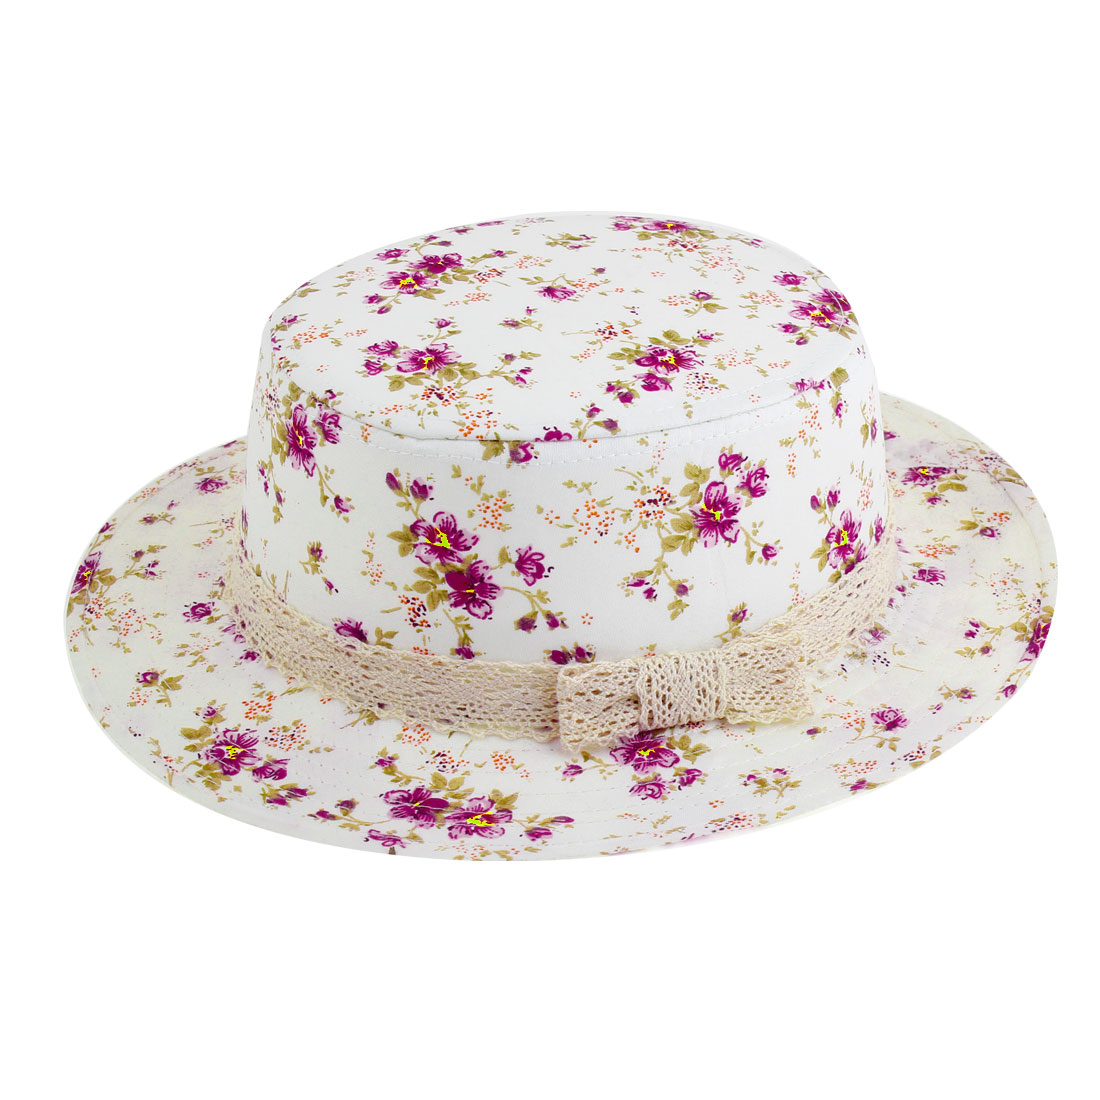 Outdoor Sports Fushcia Floral Prints Flat Top Hat White for Woman